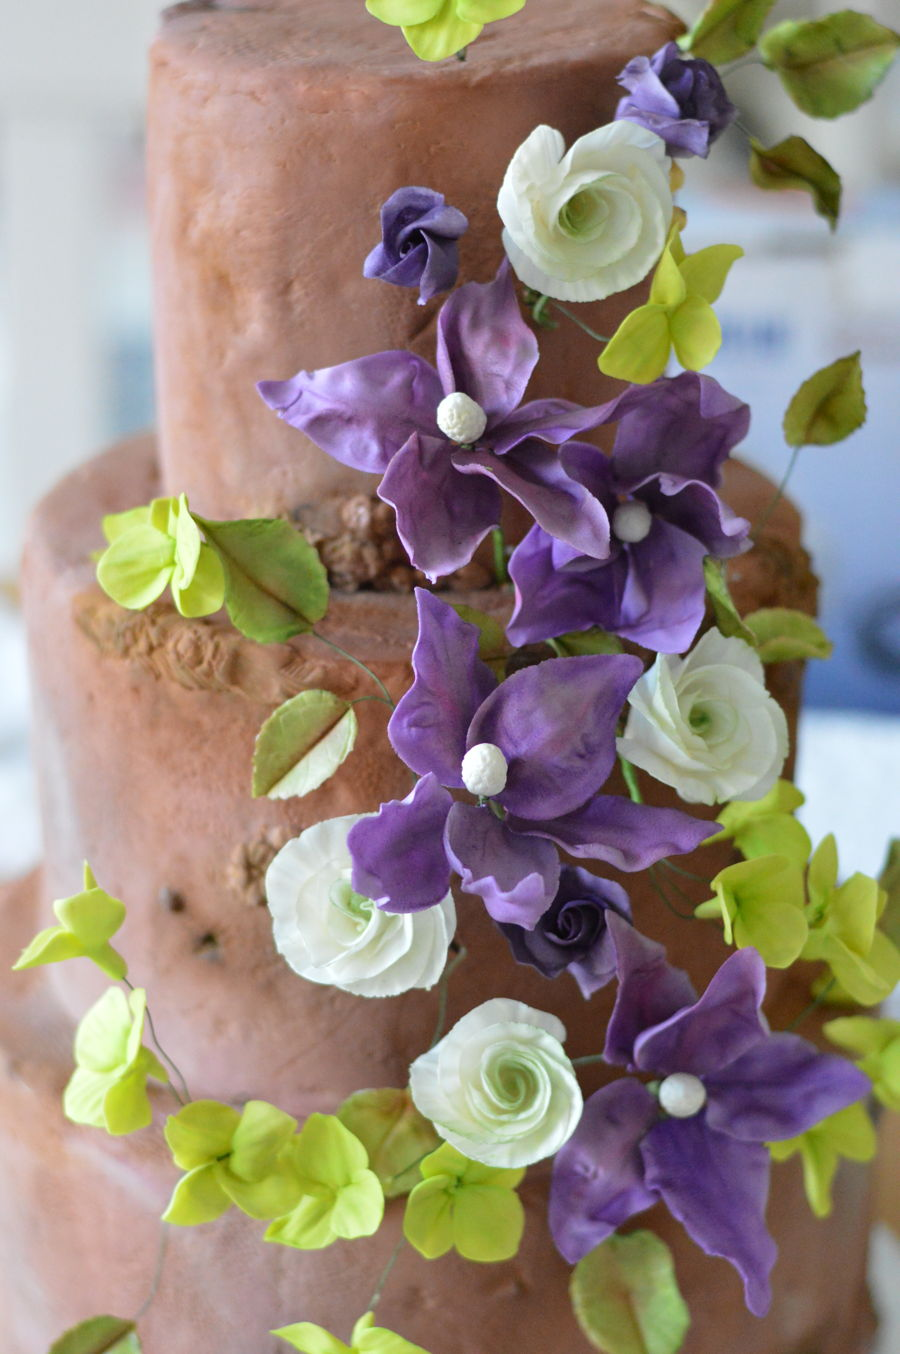 Woodland Wedding Cake With Violet Clematis And Lime Green Hydrangeas on Cake Central